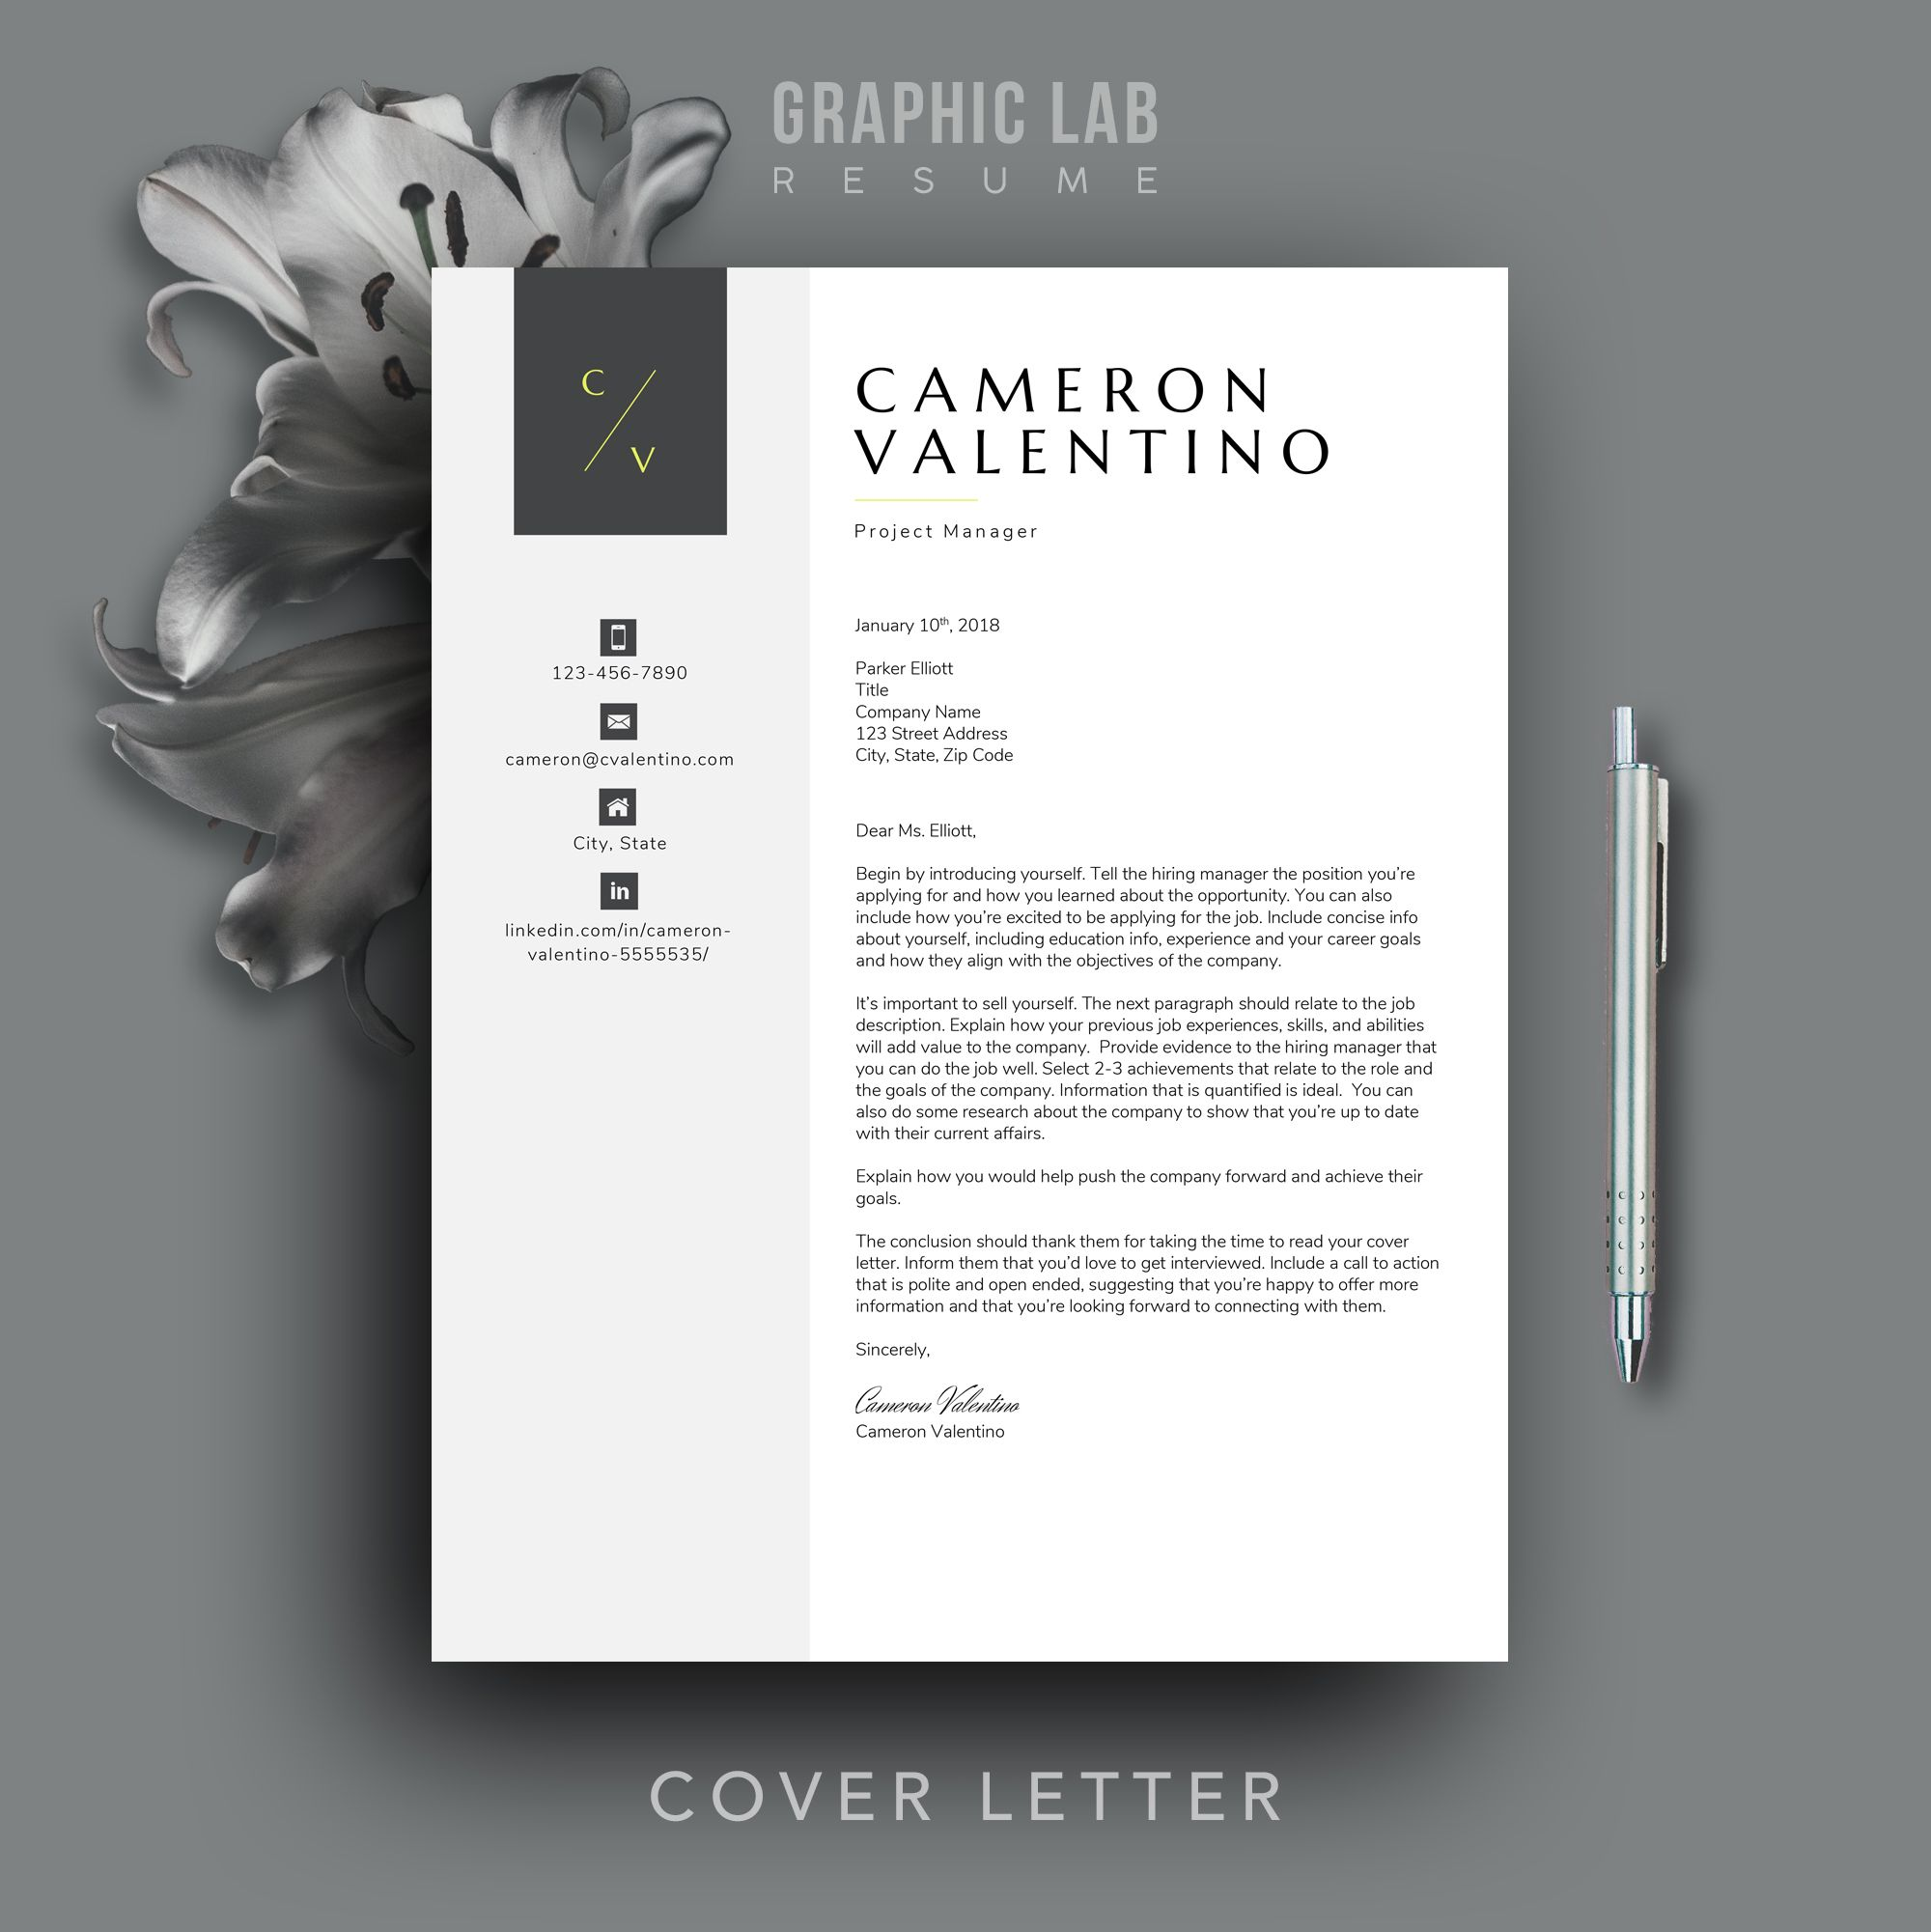 modern resume template cv design word etsy in contemporary calibri font for head line Resume Contemporary Modern Resume Template